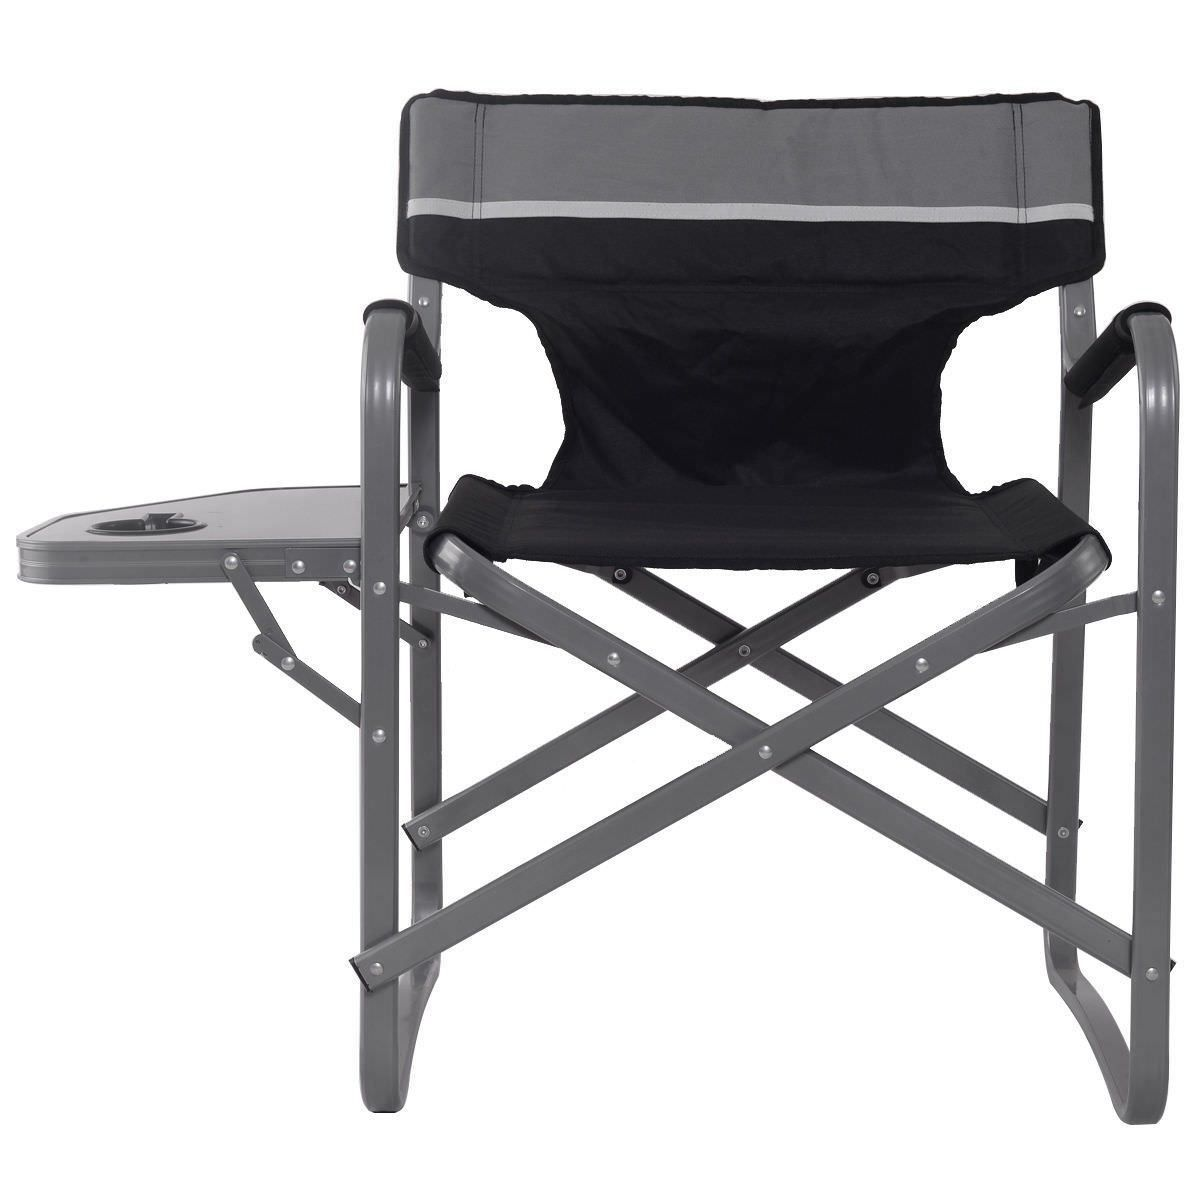 Camping directors chair with cup holder folding outdoor